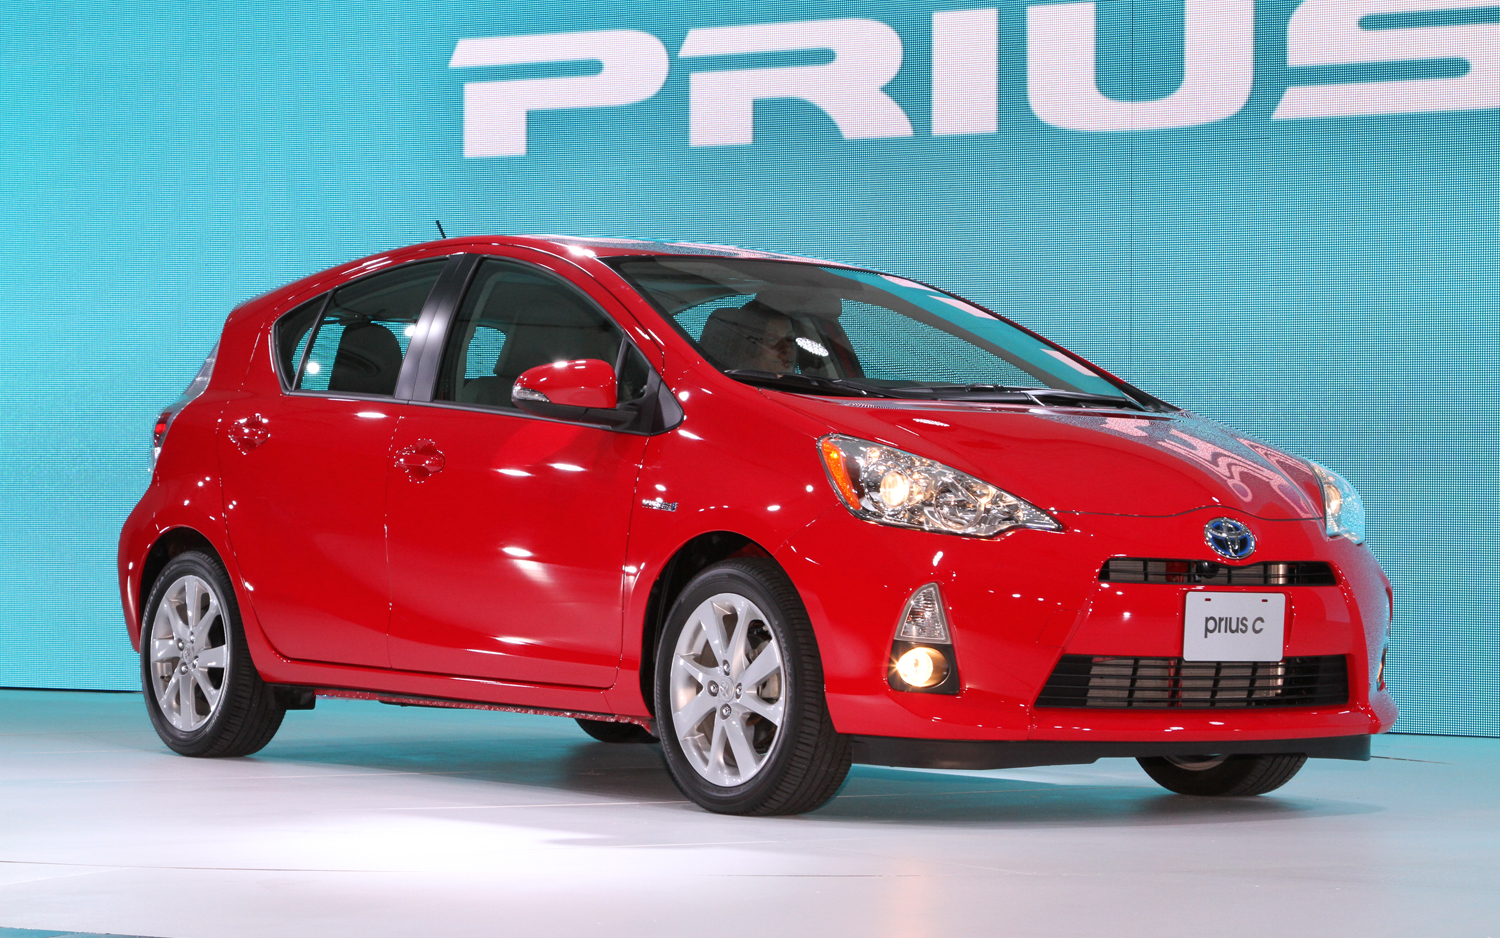 By The Numbers 2013 Toyota Prius C Vs 2012 Honda Insight Vs 2012